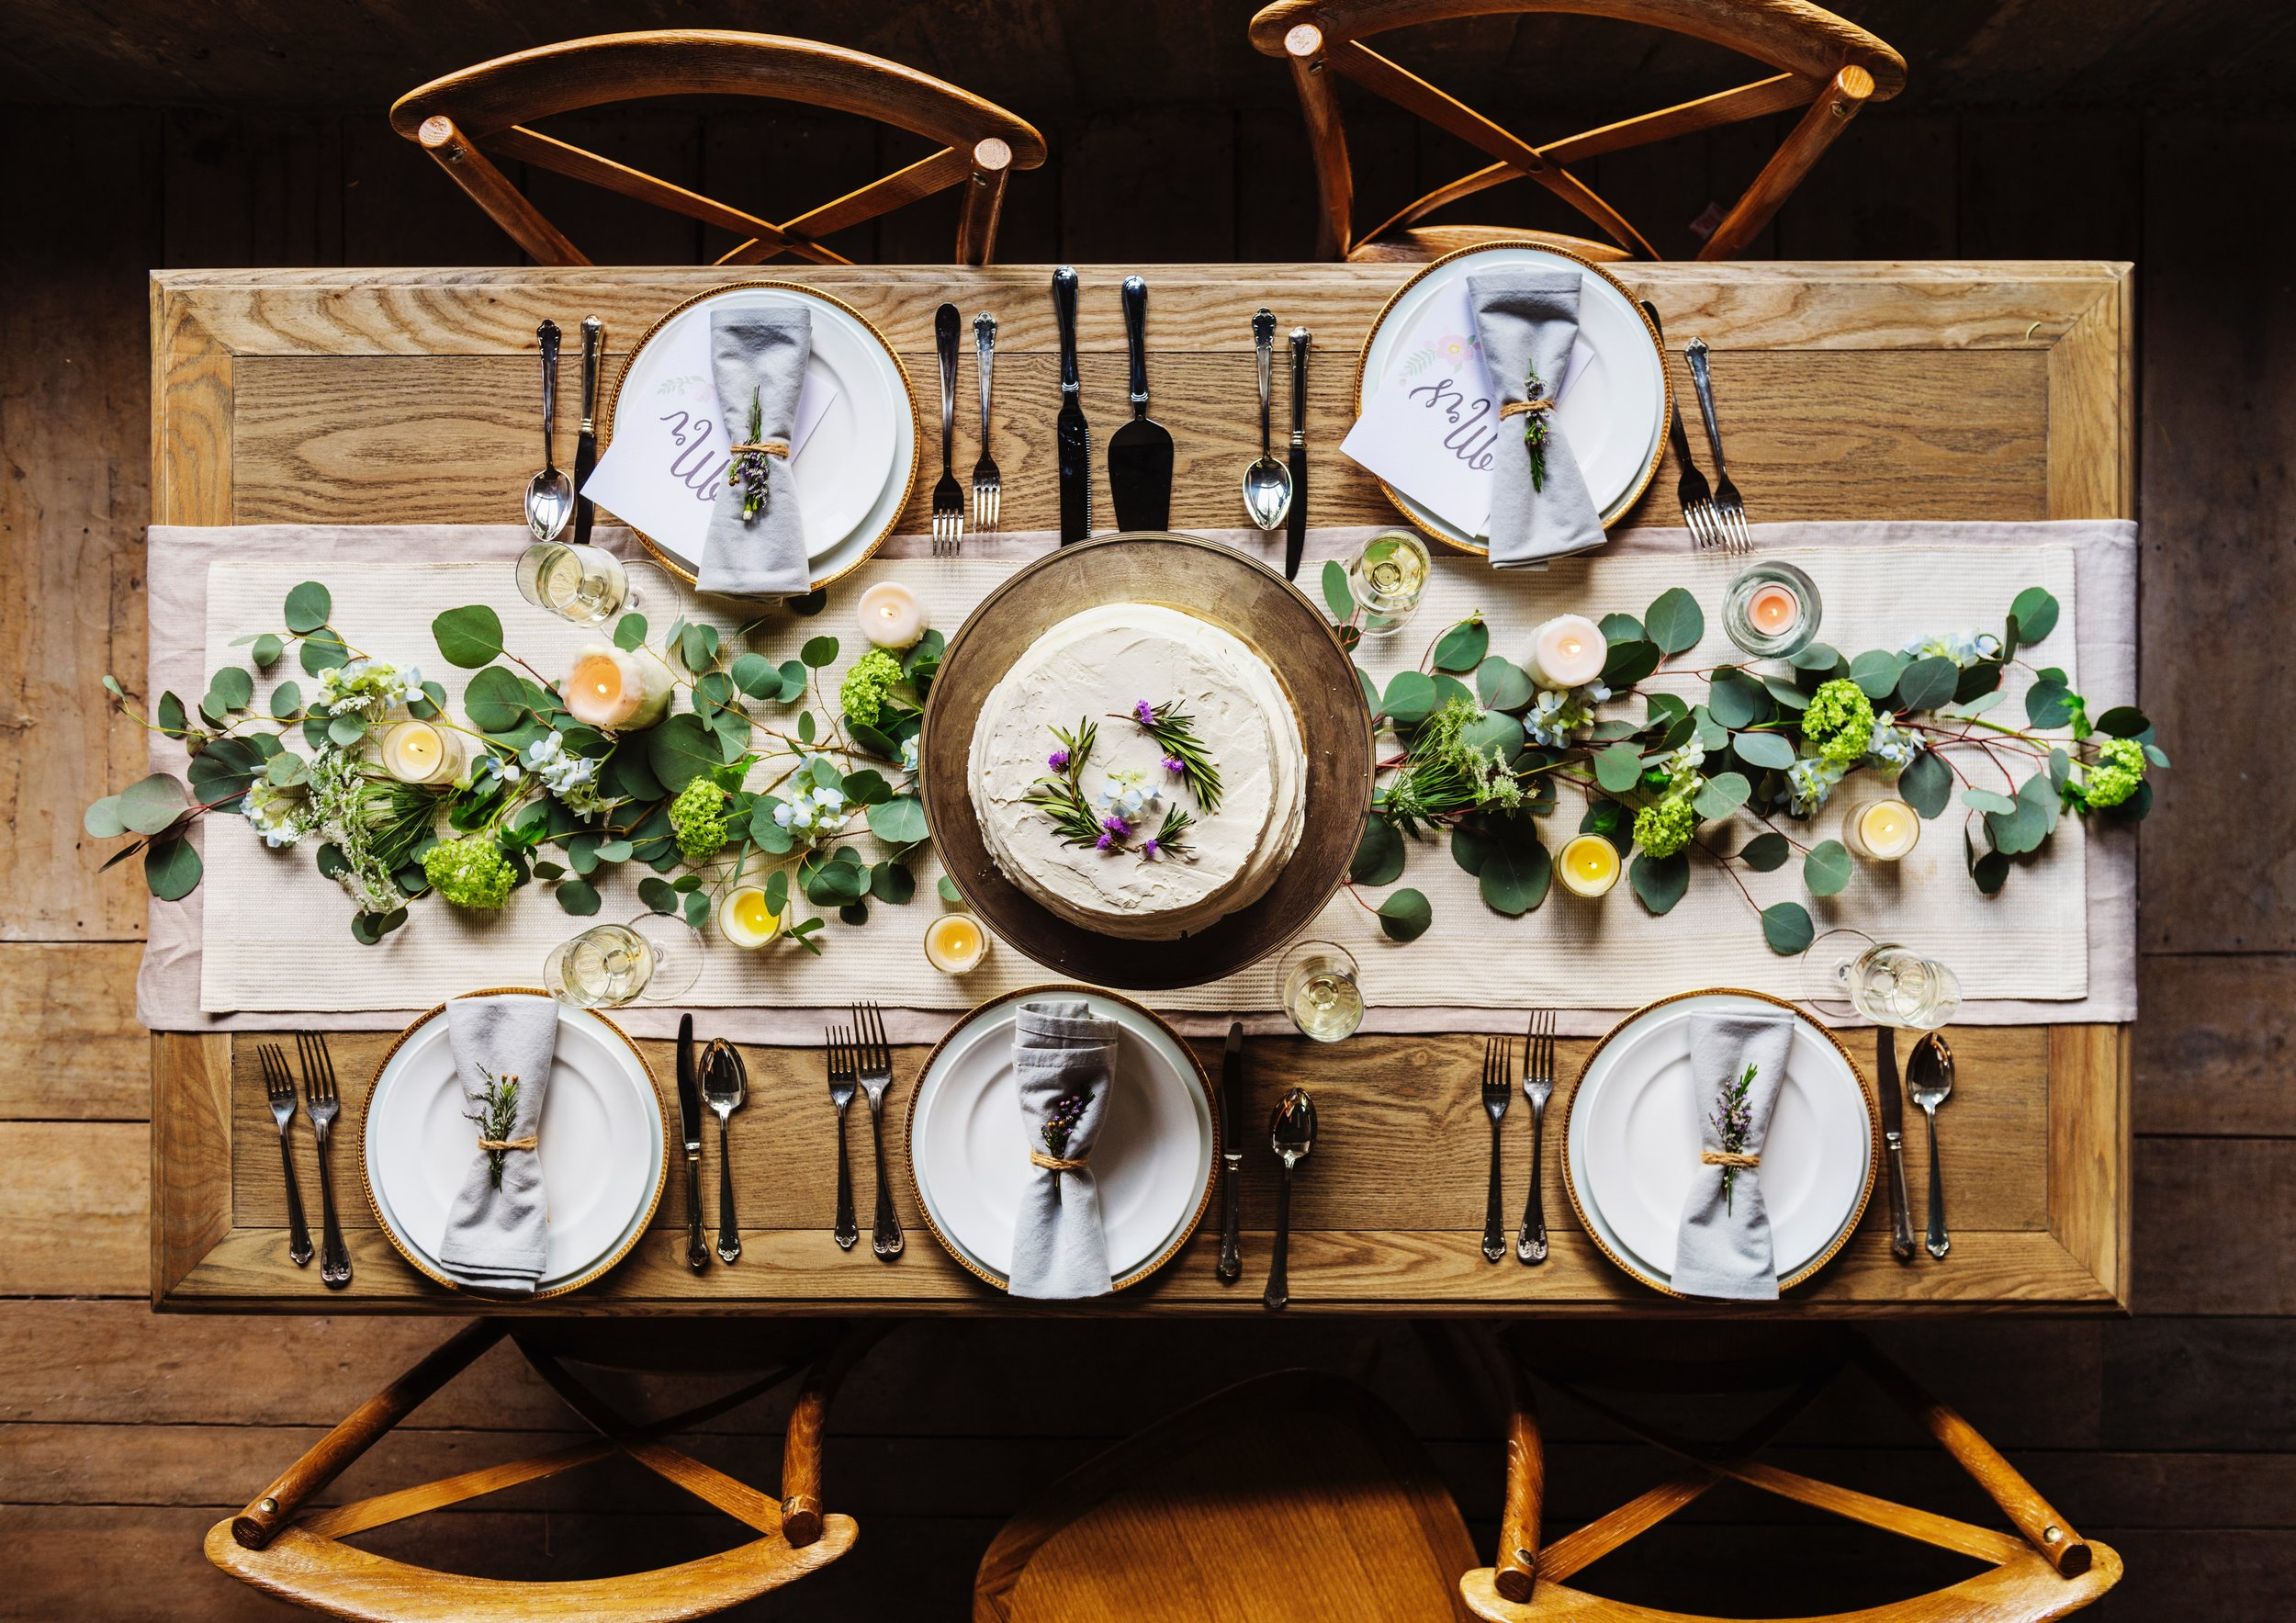 What the table might look like, if you have decorating genius, which I don't. [Photo by  rawpixel  on  Unsplash  ]